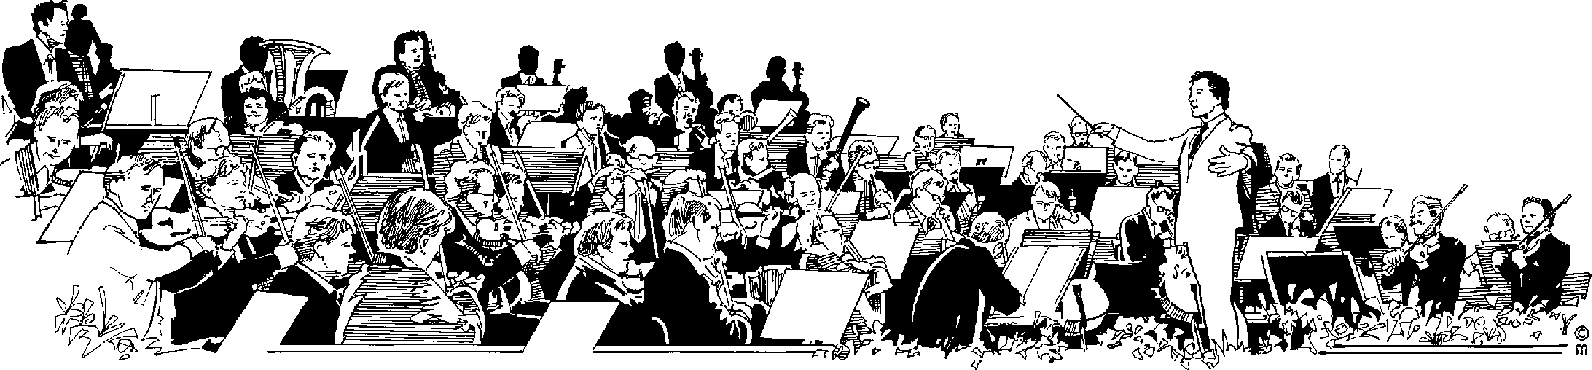 Orchestra clipart spring. Group clip art library